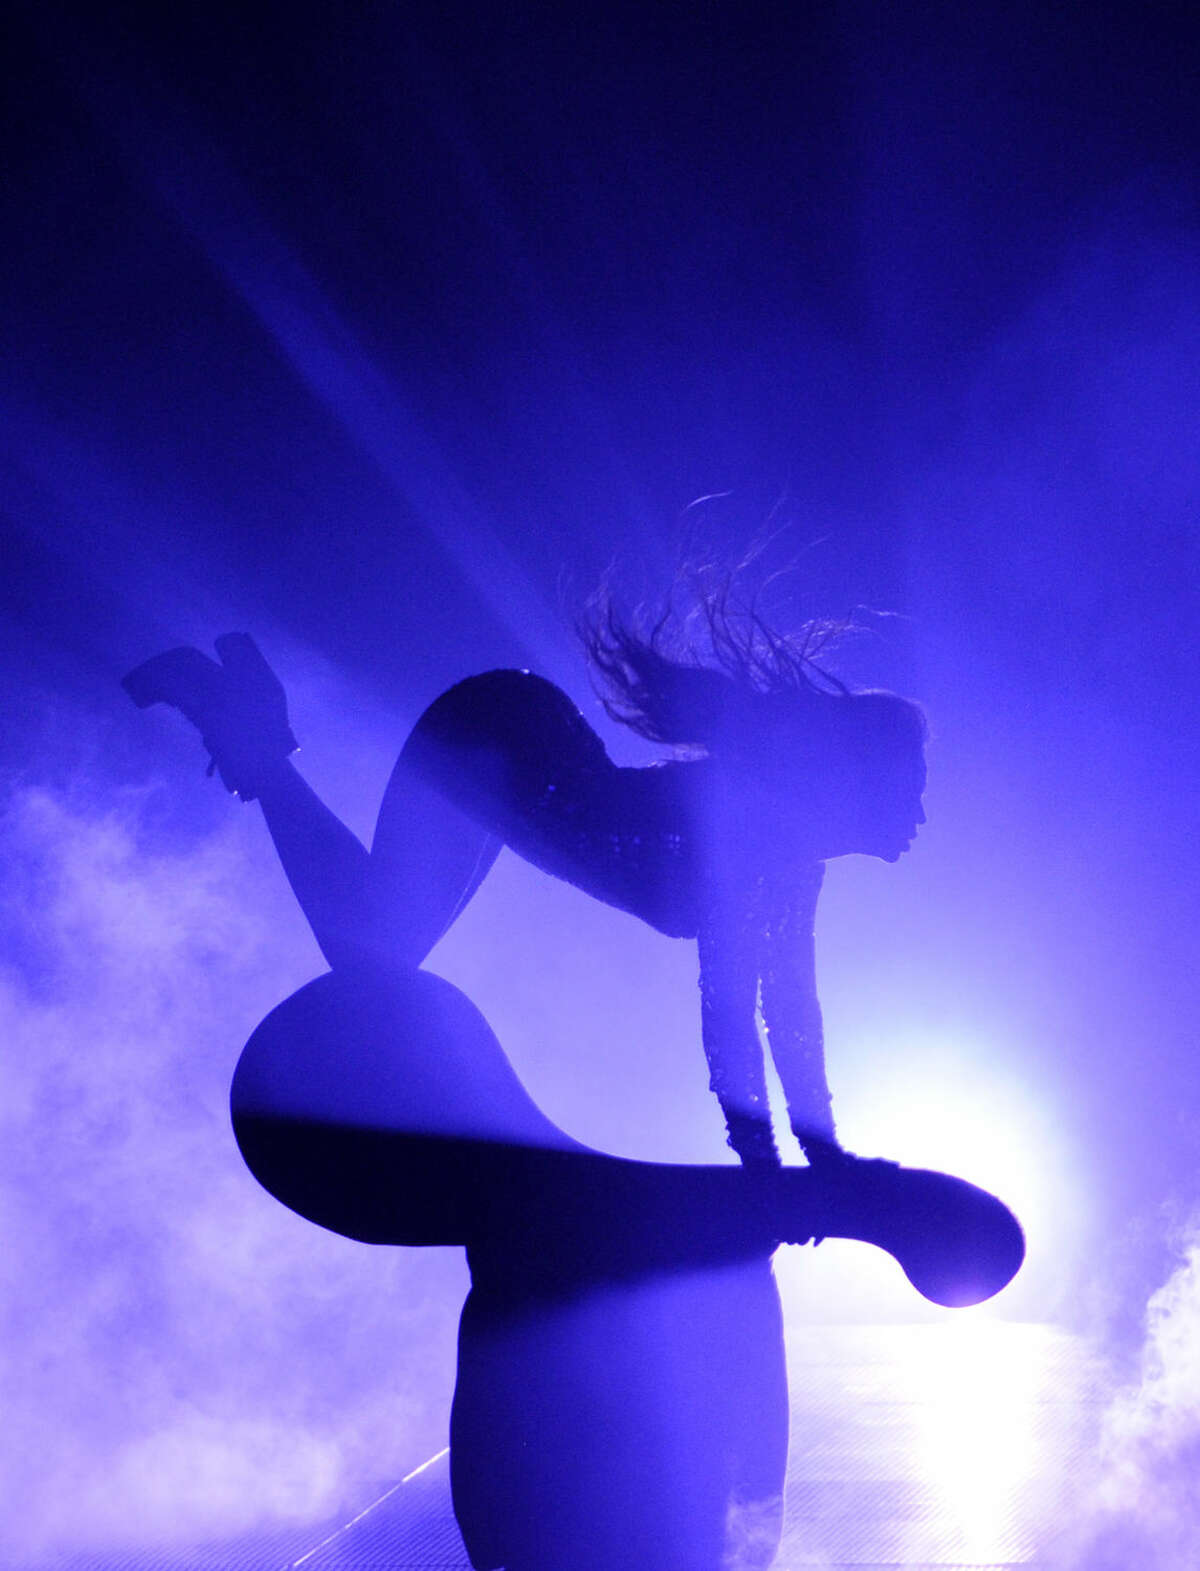 Beyonce performs onstage at the MTV Video Music Awards at The Forum on Sunday, Aug. 24, 2014, in Inglewood, Calif. (Photo by Chris Pizzello/Invision/AP)